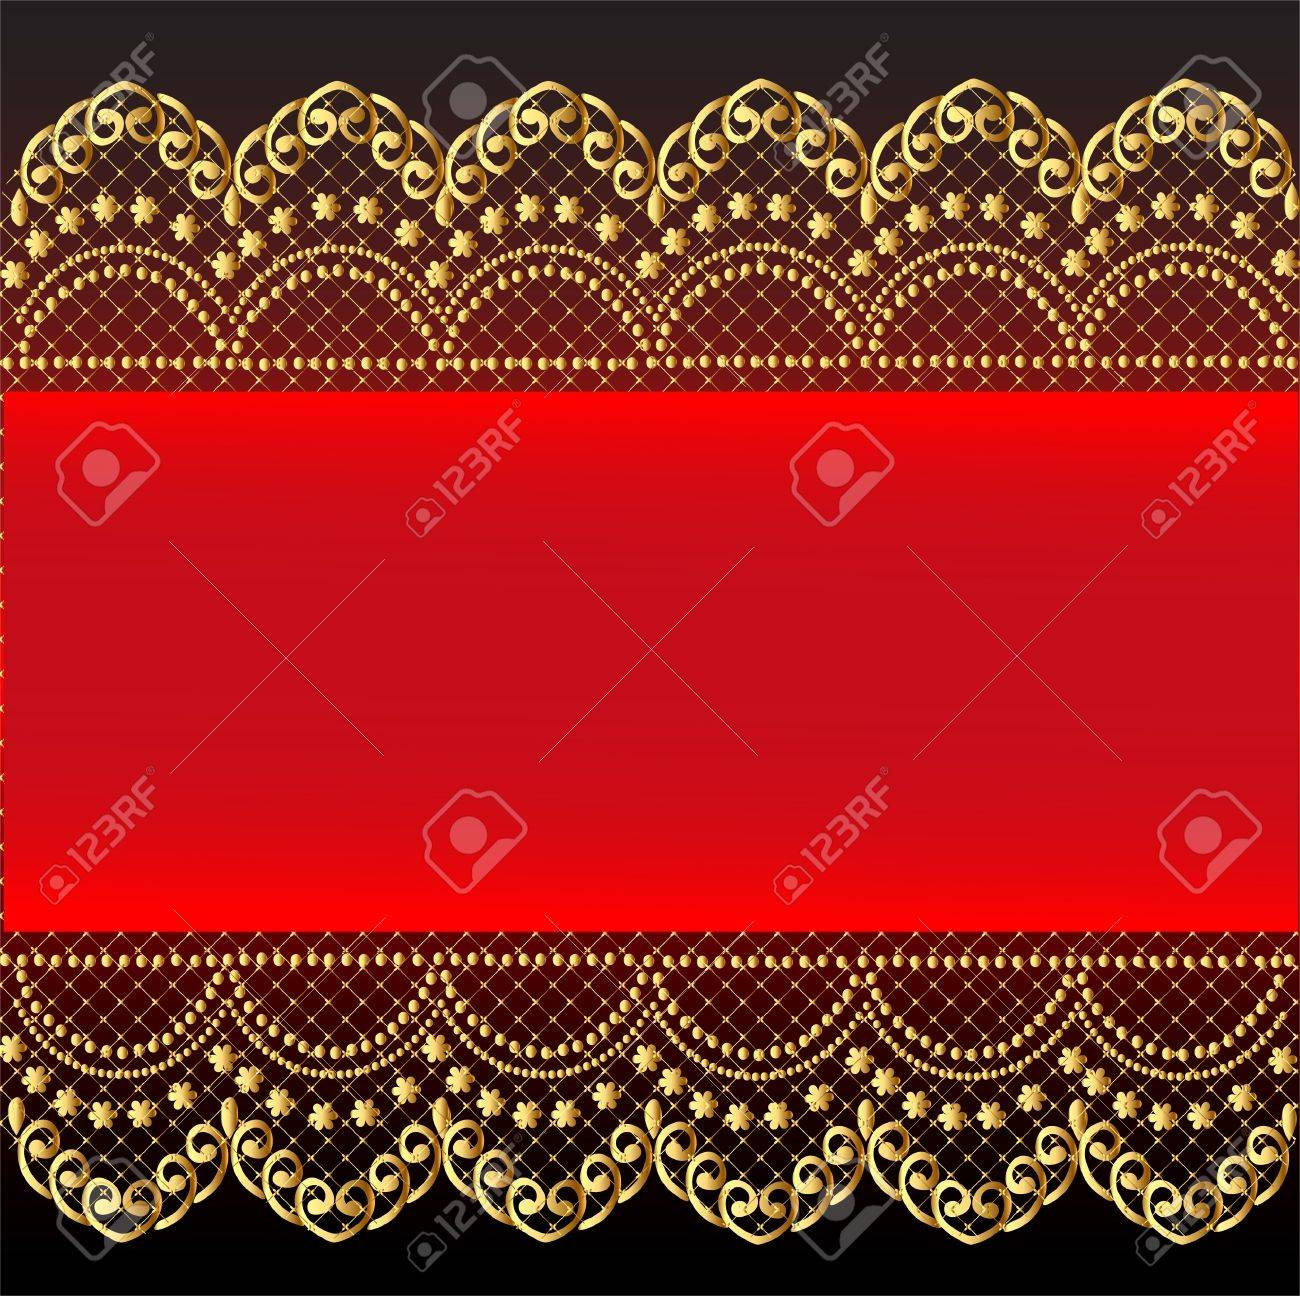 illustration red background with gold(en) pattern and net Stock Vector - 12822396